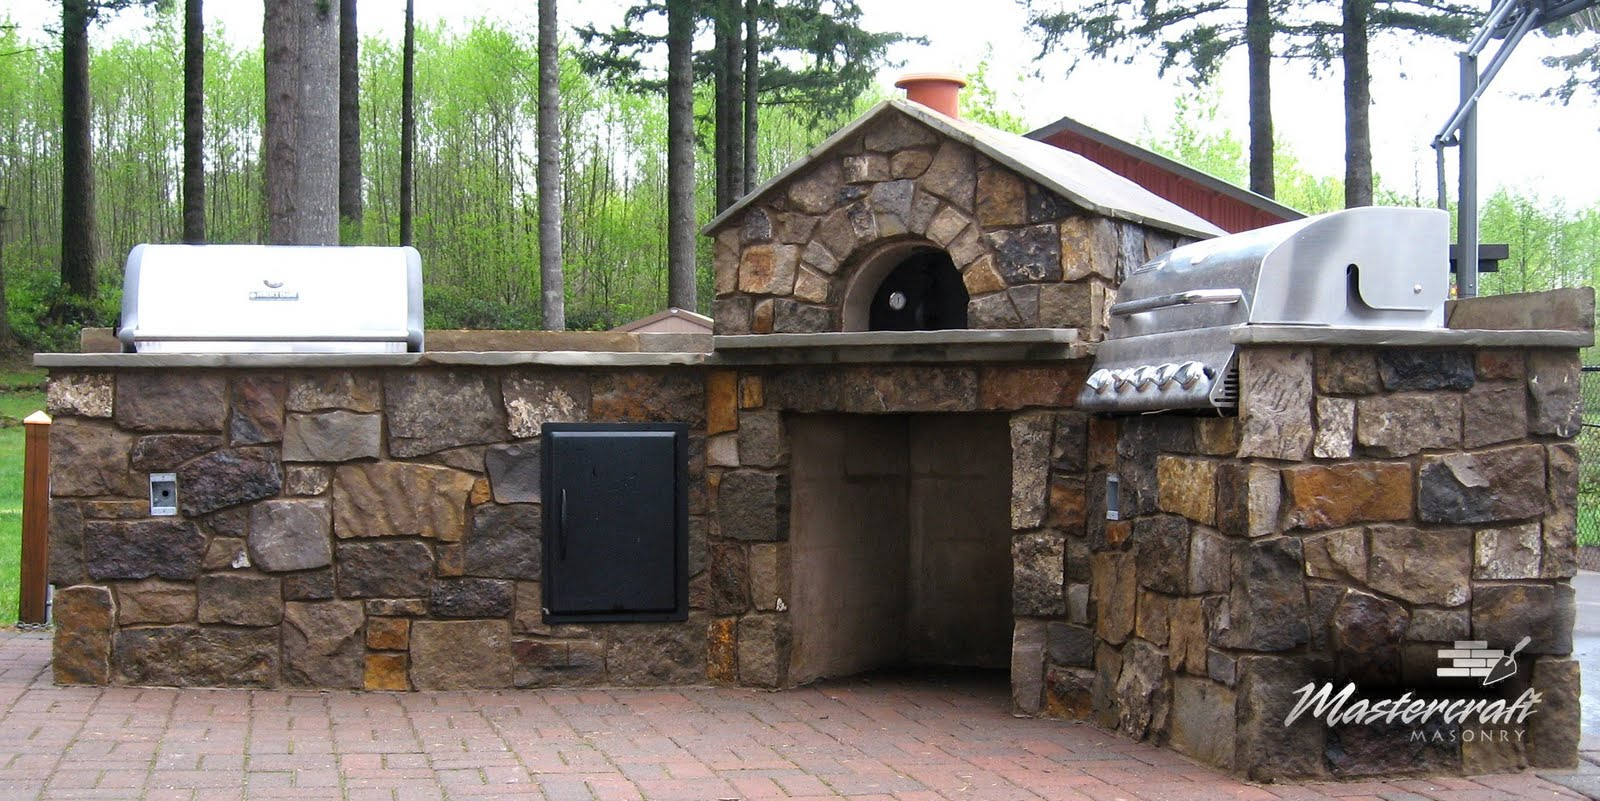 Outdoor Kitchen Oven Pull Out Trash Can Mastercraft Masonry Professional Since 1974